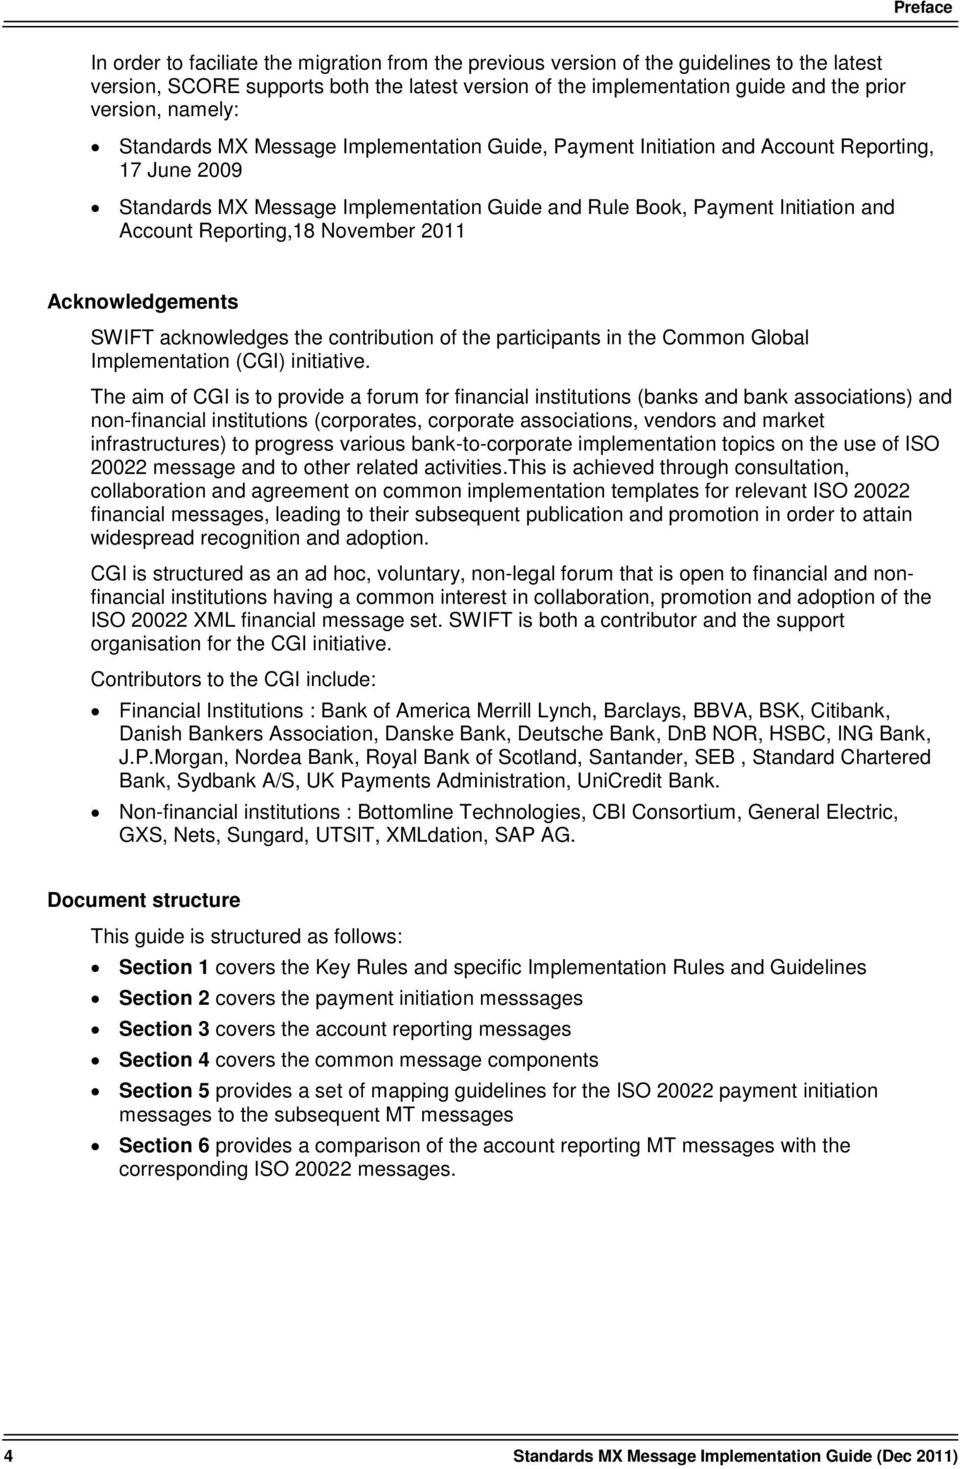 Account Reporting,18 November 2011 Acknowledgements SWIFT acknowledges the contribution of the participants in the Common Global Implementation (CGI) initiative.